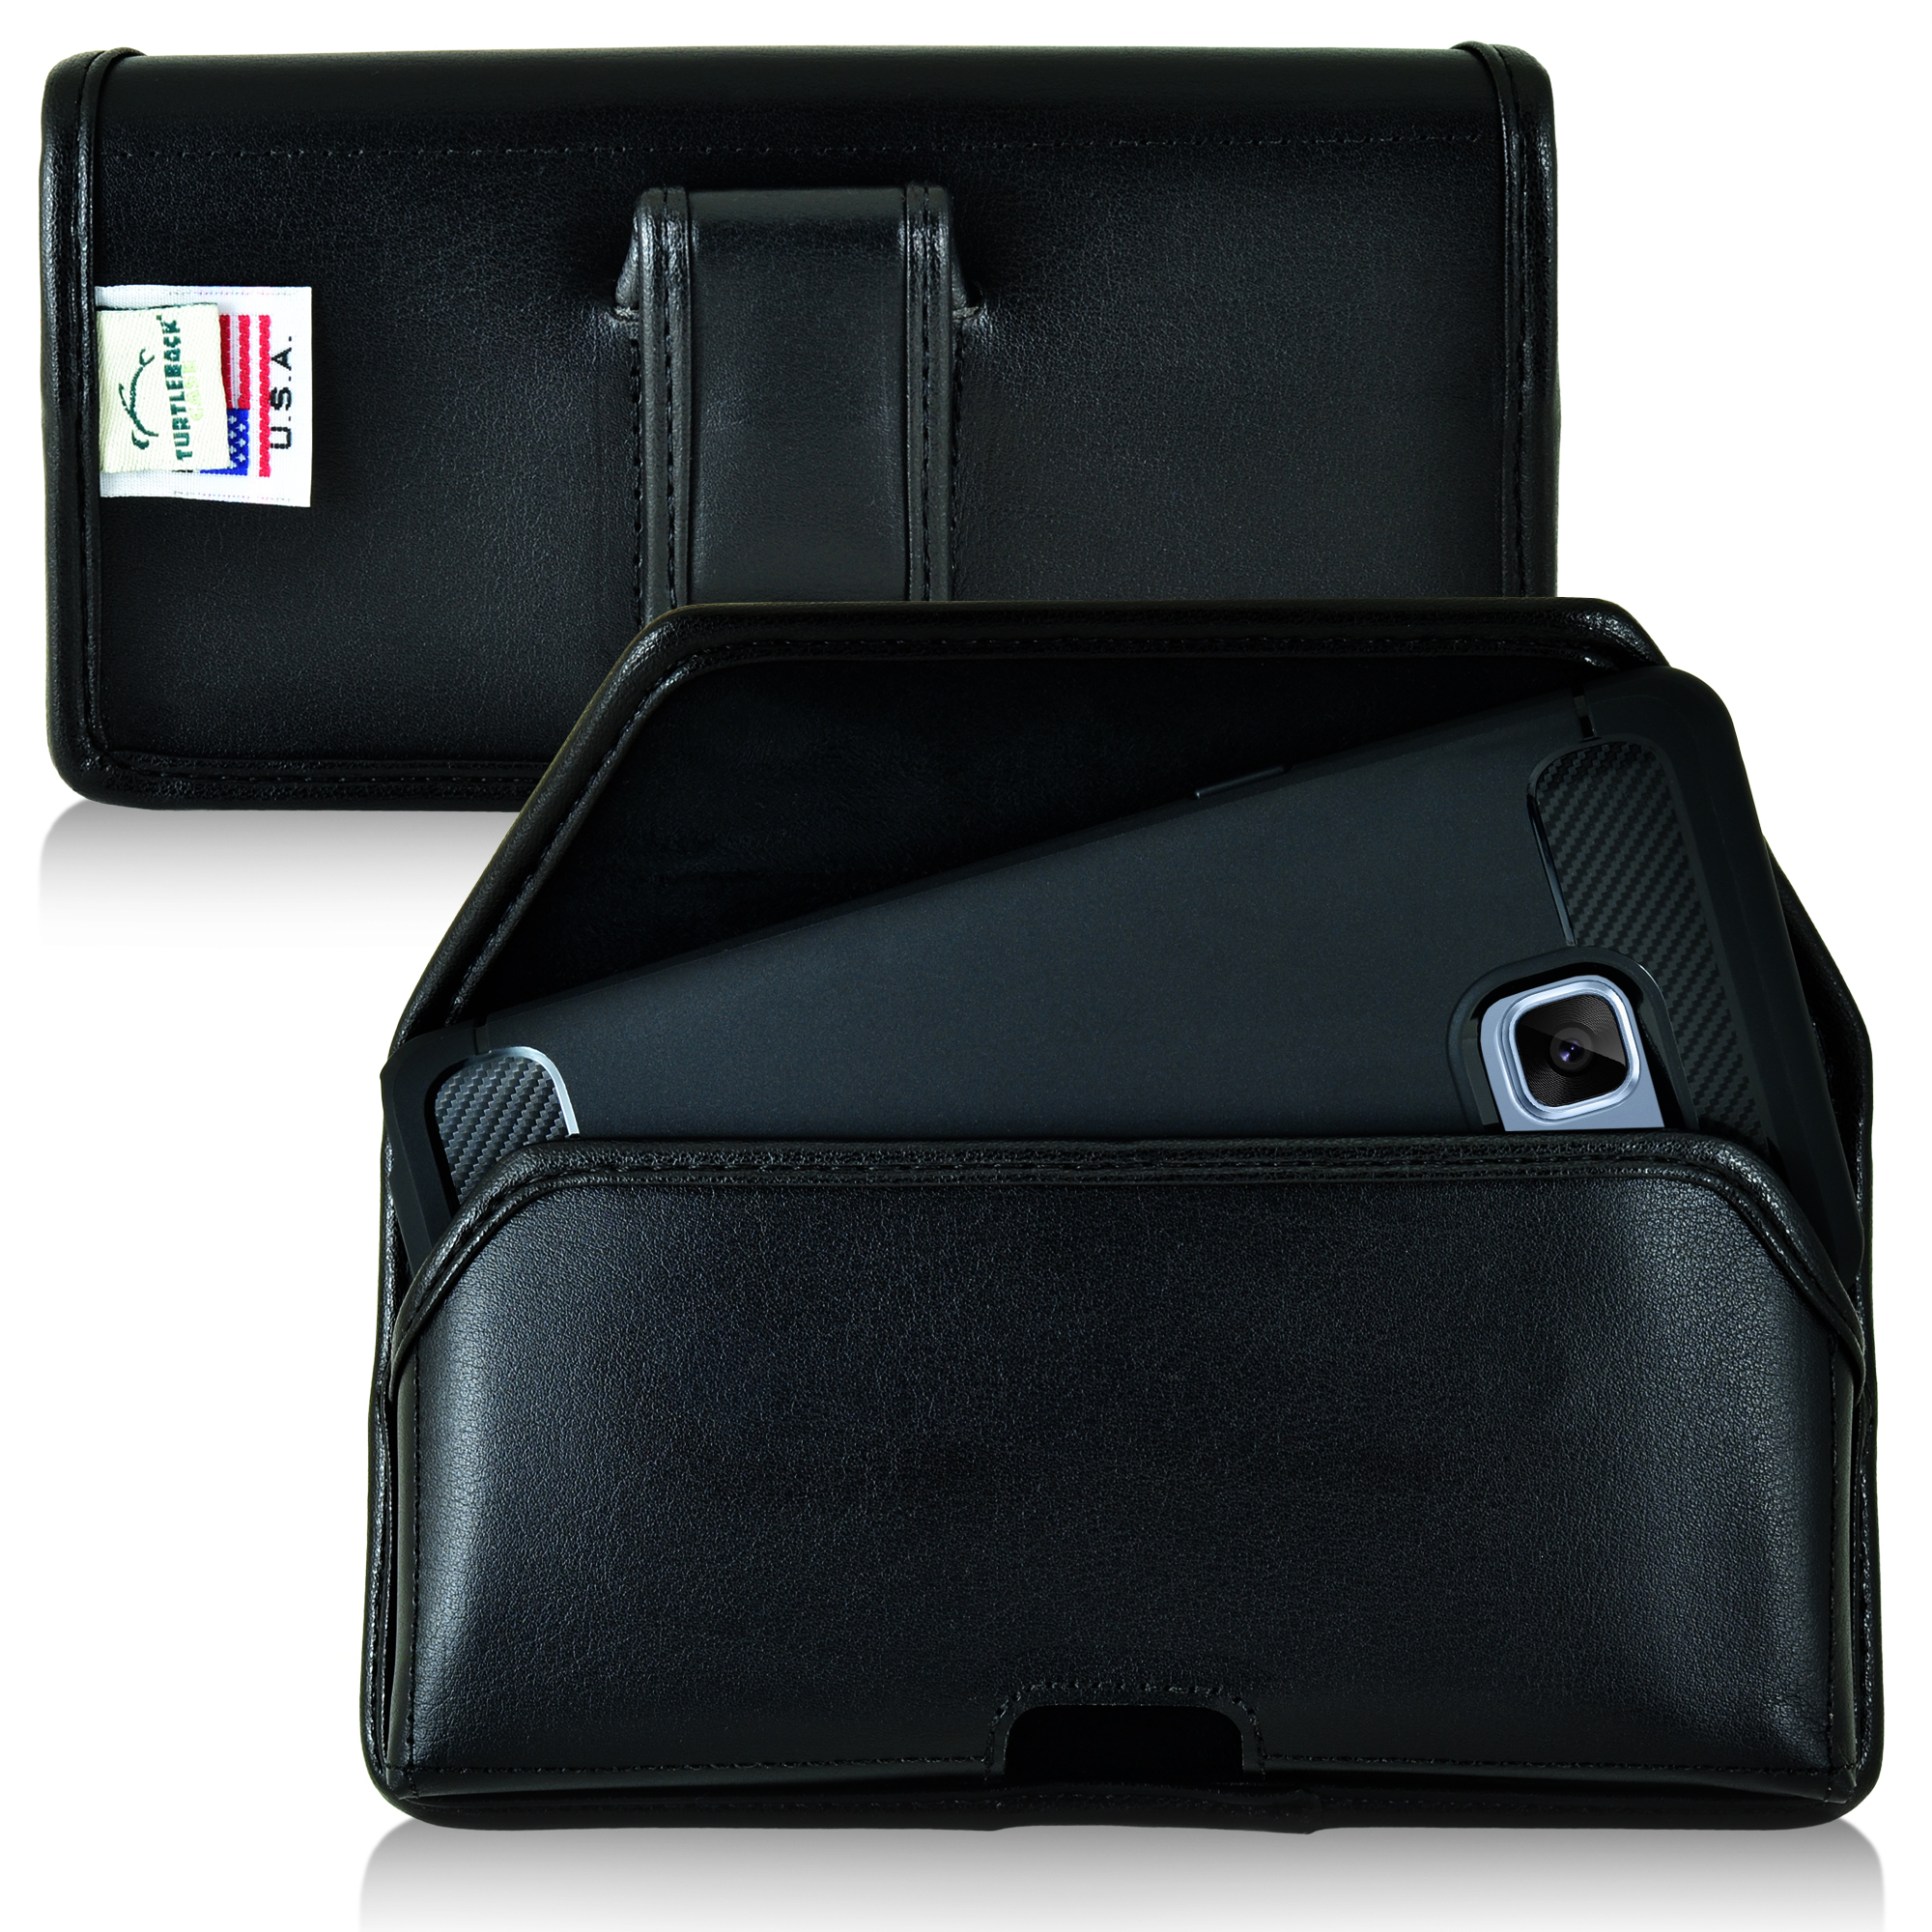 Samsung Galaxy Note 7 Pouch, [Black] Horizontal Holster, Real Leather Pouch w/ Executive Belt Clip, Fits with Slim Case